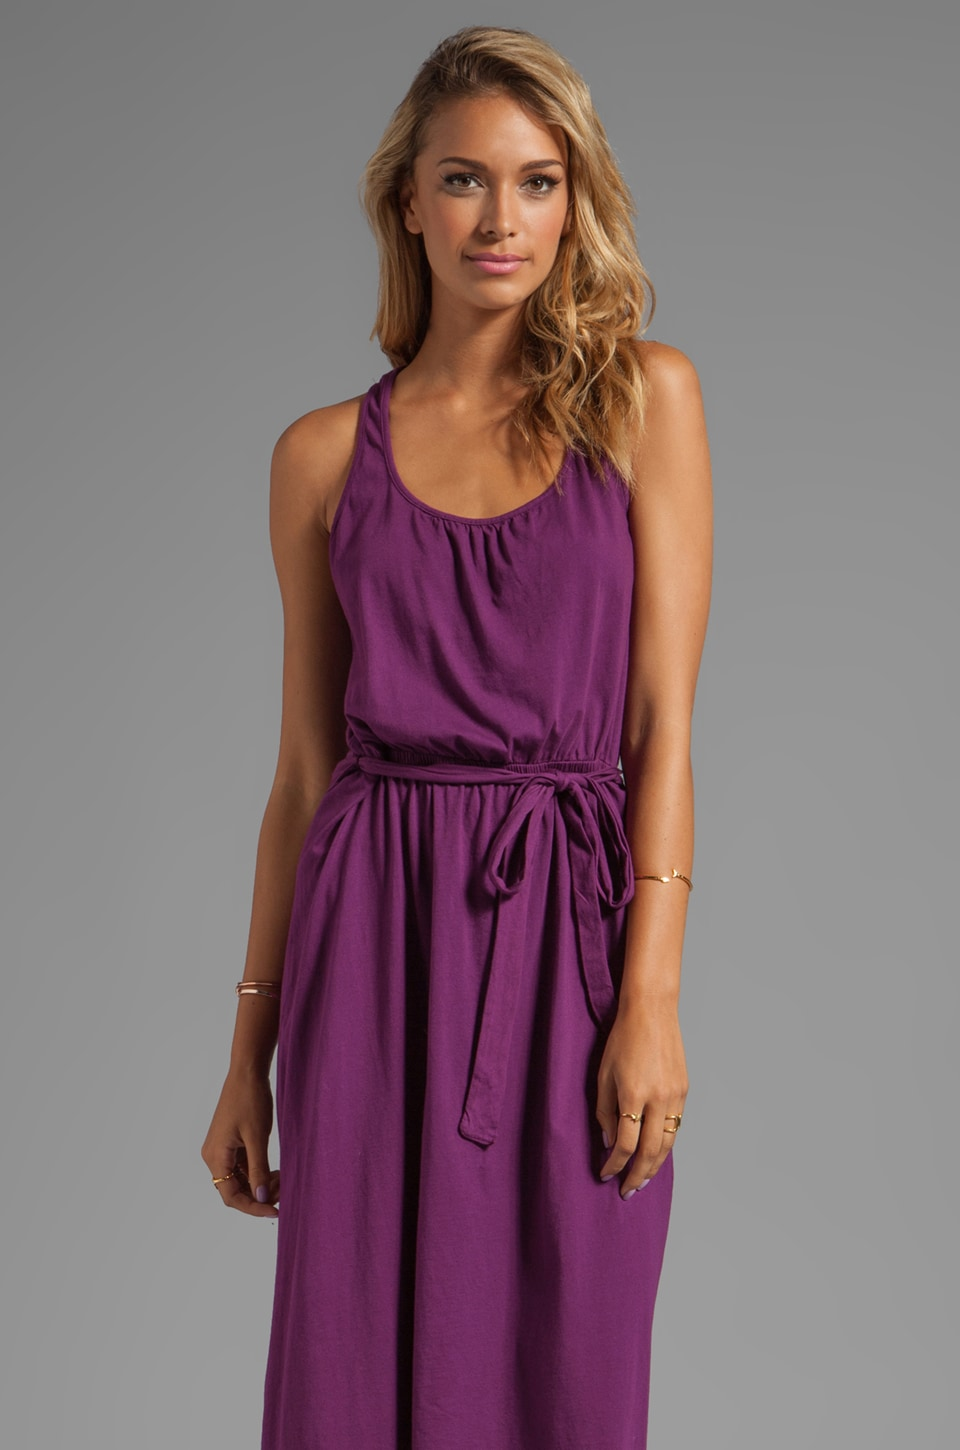 Michael Stars Jersey Knit Sleeveless Scoop Neck Racerback Hi-Lo Maxi Dress in Boysenberry